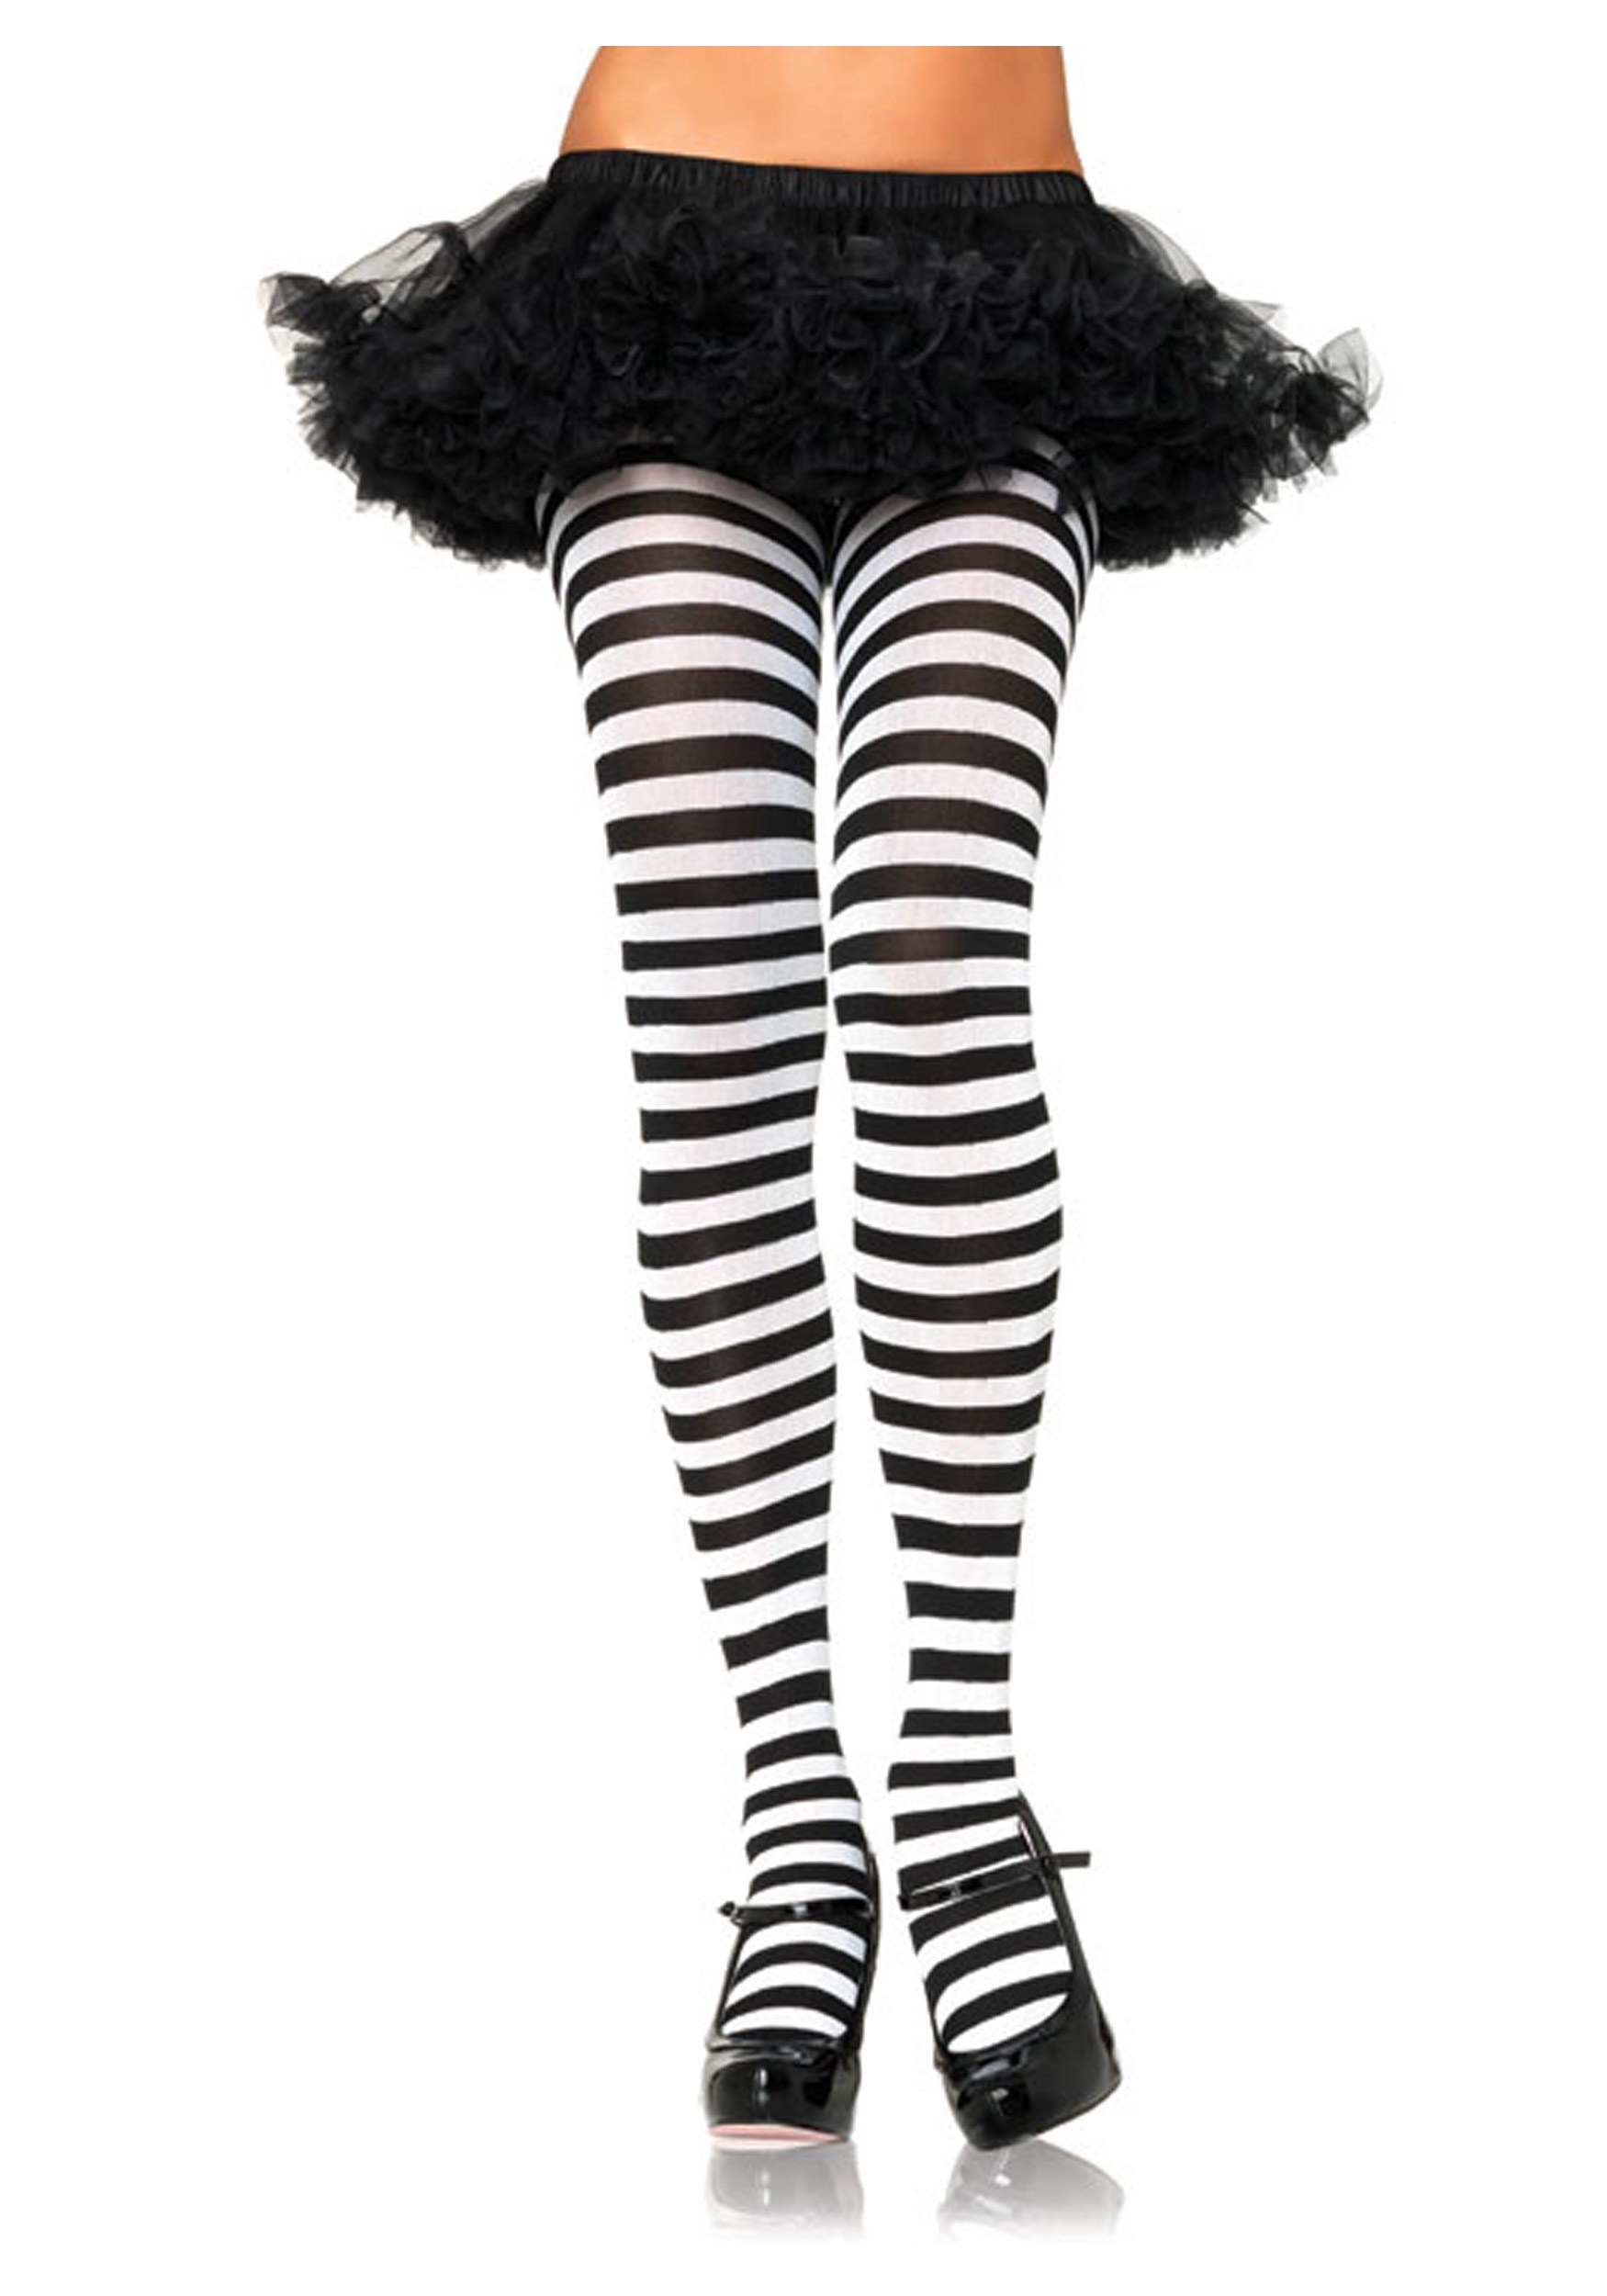 These alluring and spooky Black & White Striped Leggings are the only thing (besides your costume, of course) you should be trick-or-treating in this Halloween! With their Tim Burton-esque black and white vertical stripes, the possibilities are limitless with these awesome tights.